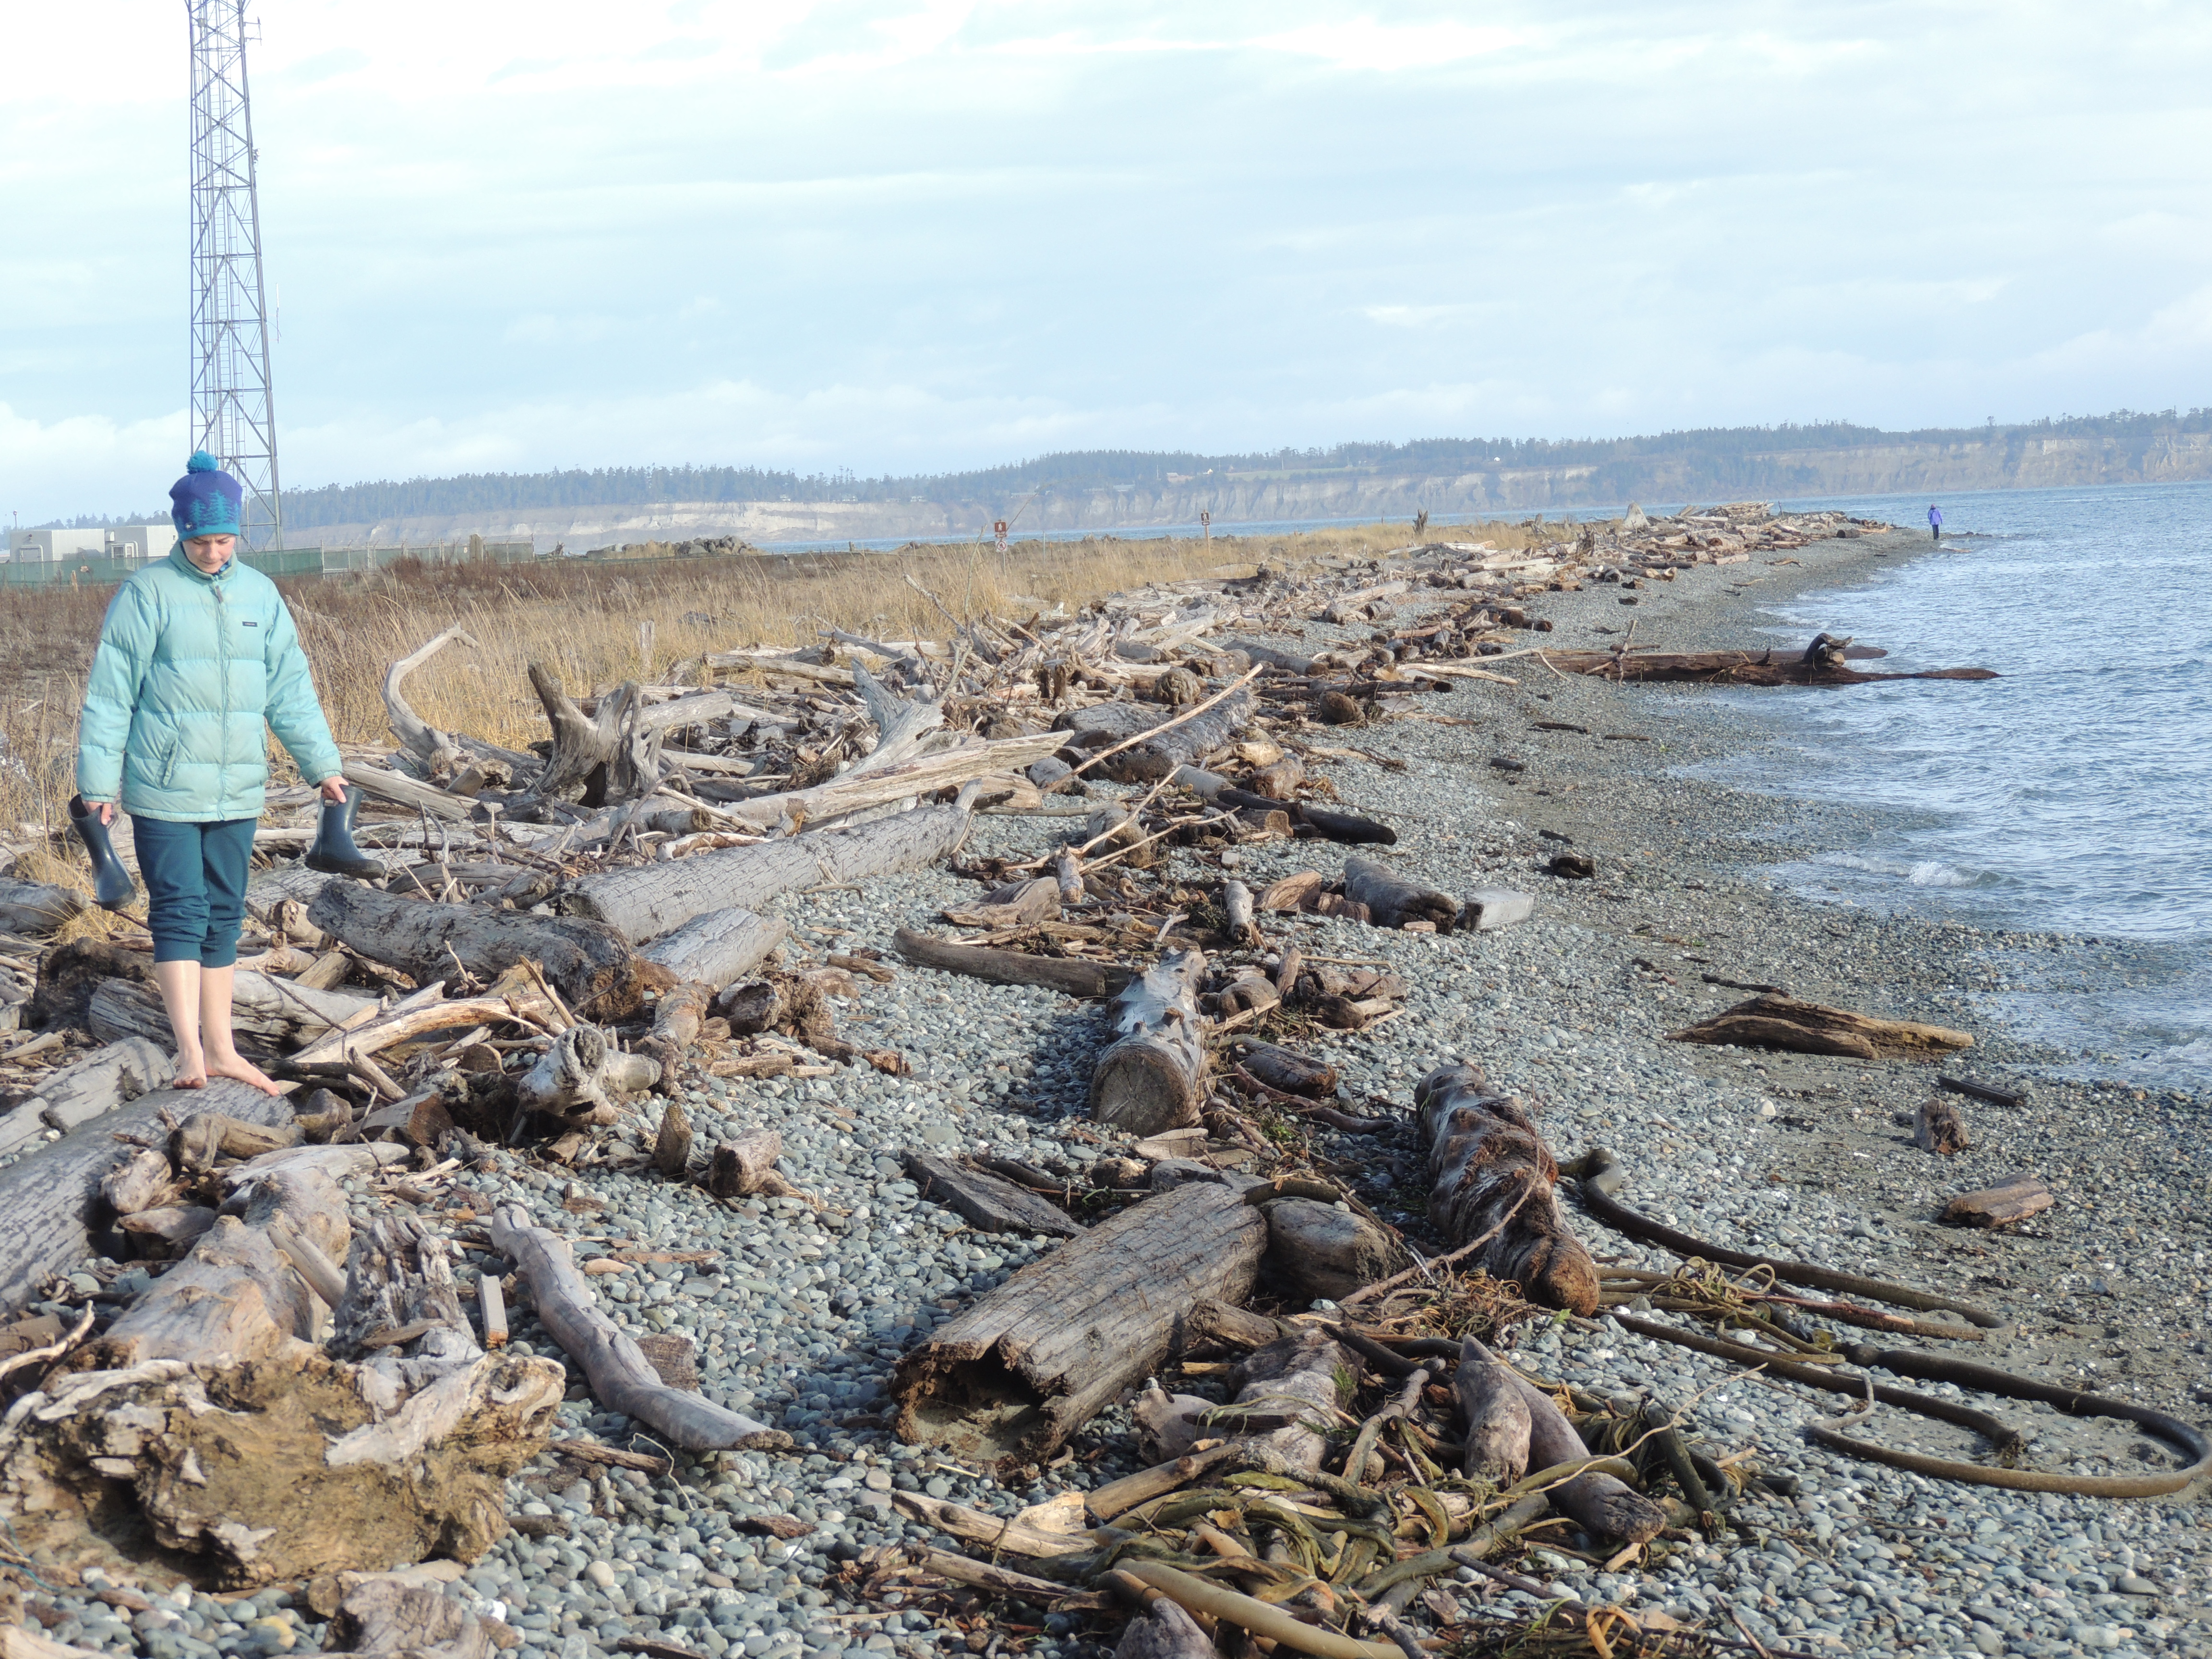 beach with driftwood with barefoot person in down jacket and winter coat, all in shades of blue, gray and turquoise